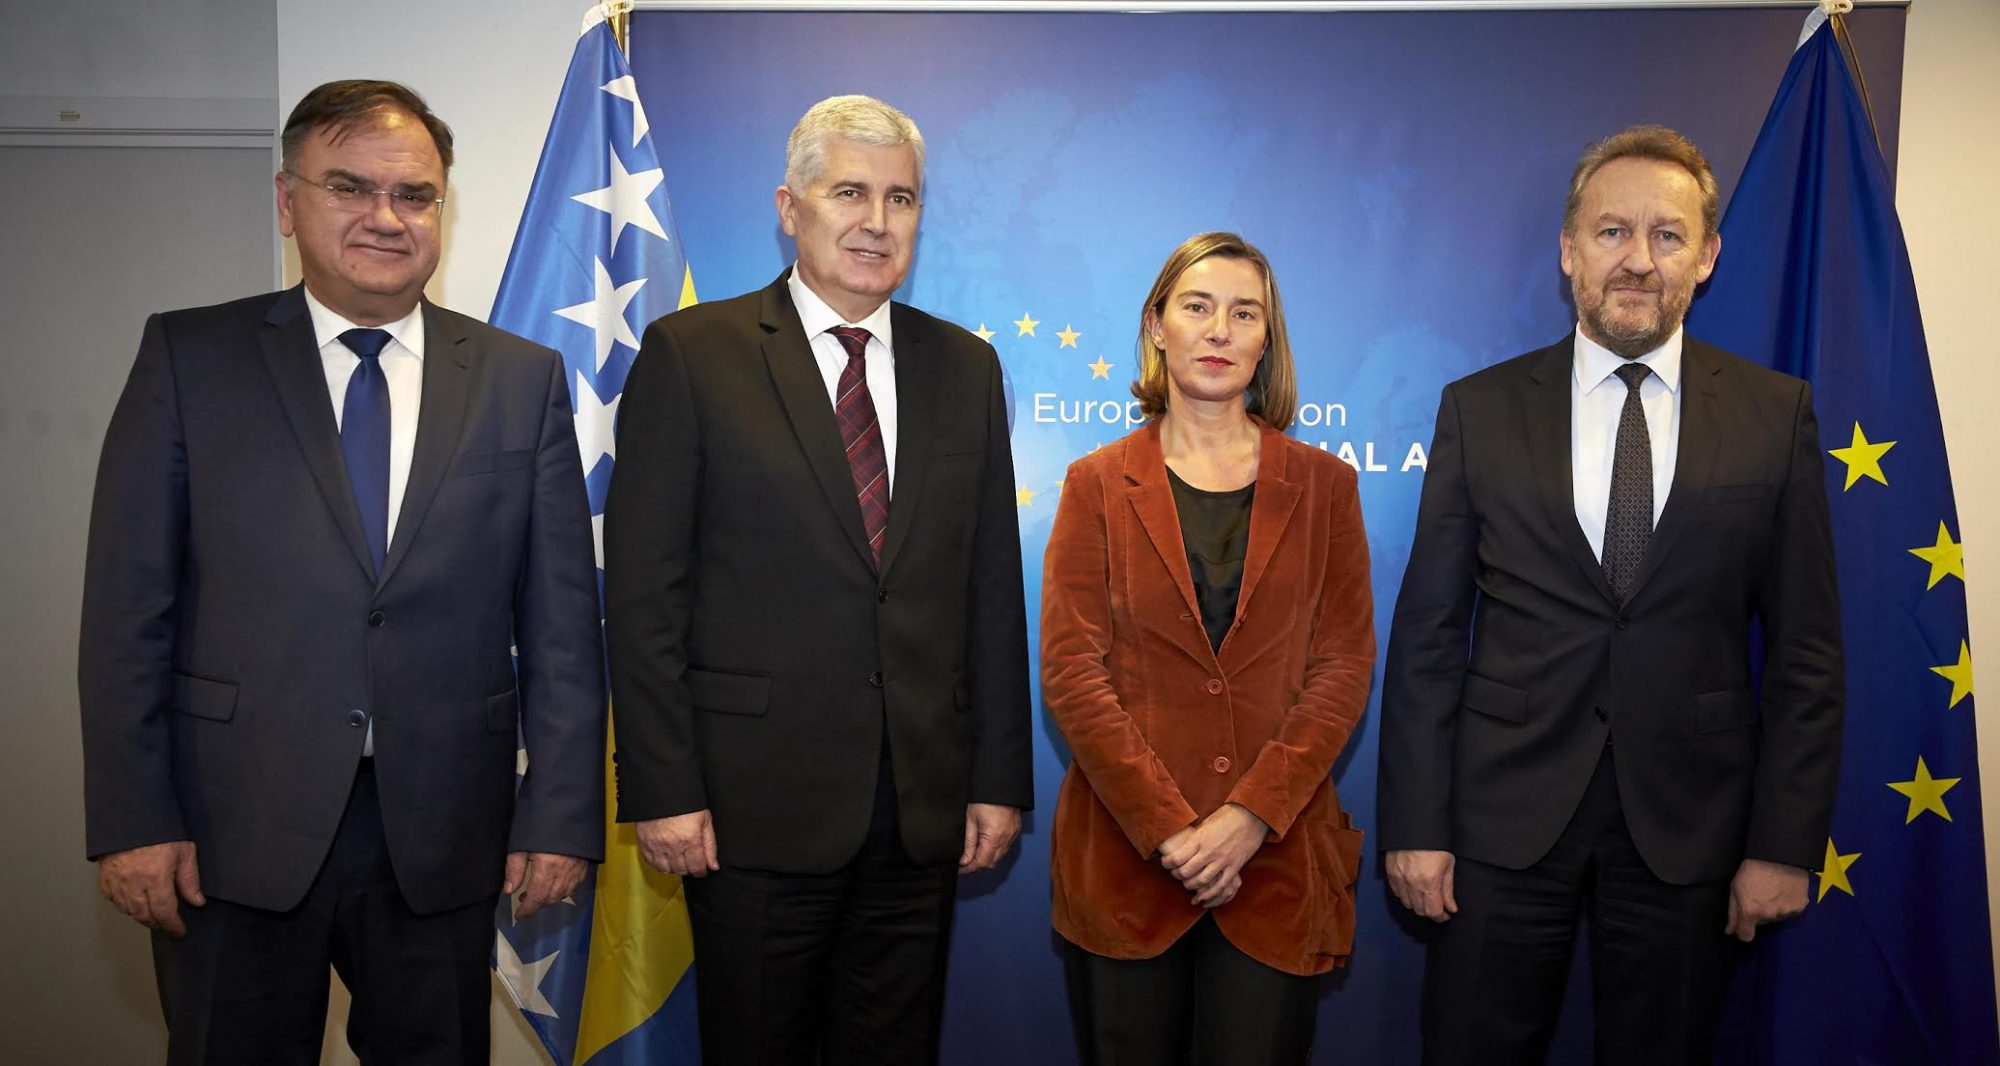 BiH Presidency members hold meetings in Brussels